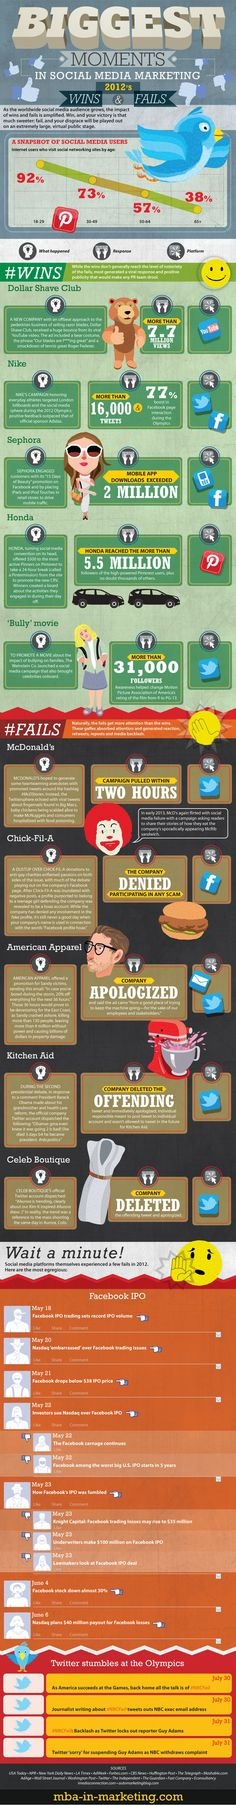 Biggest Moments in Social Media 2012 - Biggest Marketing Wins and Fails [infographic] Social Media Branding, Social Media Plattformen, Le Social, Social Networks, Marketing And Advertising, Internet Marketing, Online Marketing, Social Media Marketing, Digital Marketing